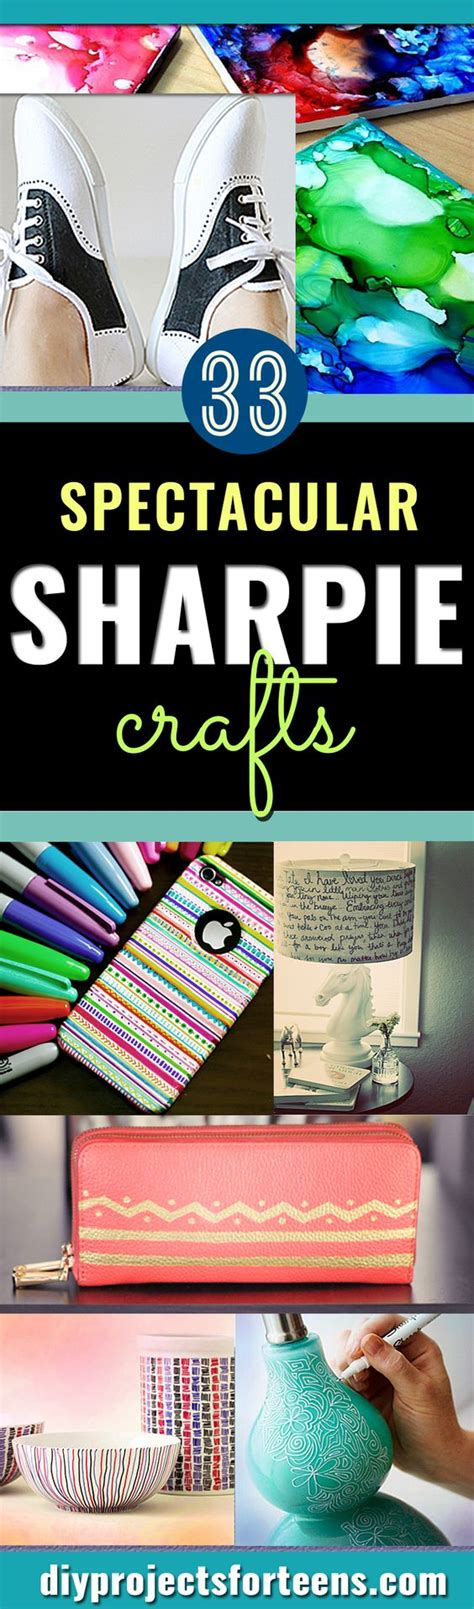 crafts sharpie 33 cool sharpie crafts and diy project ideas awesome